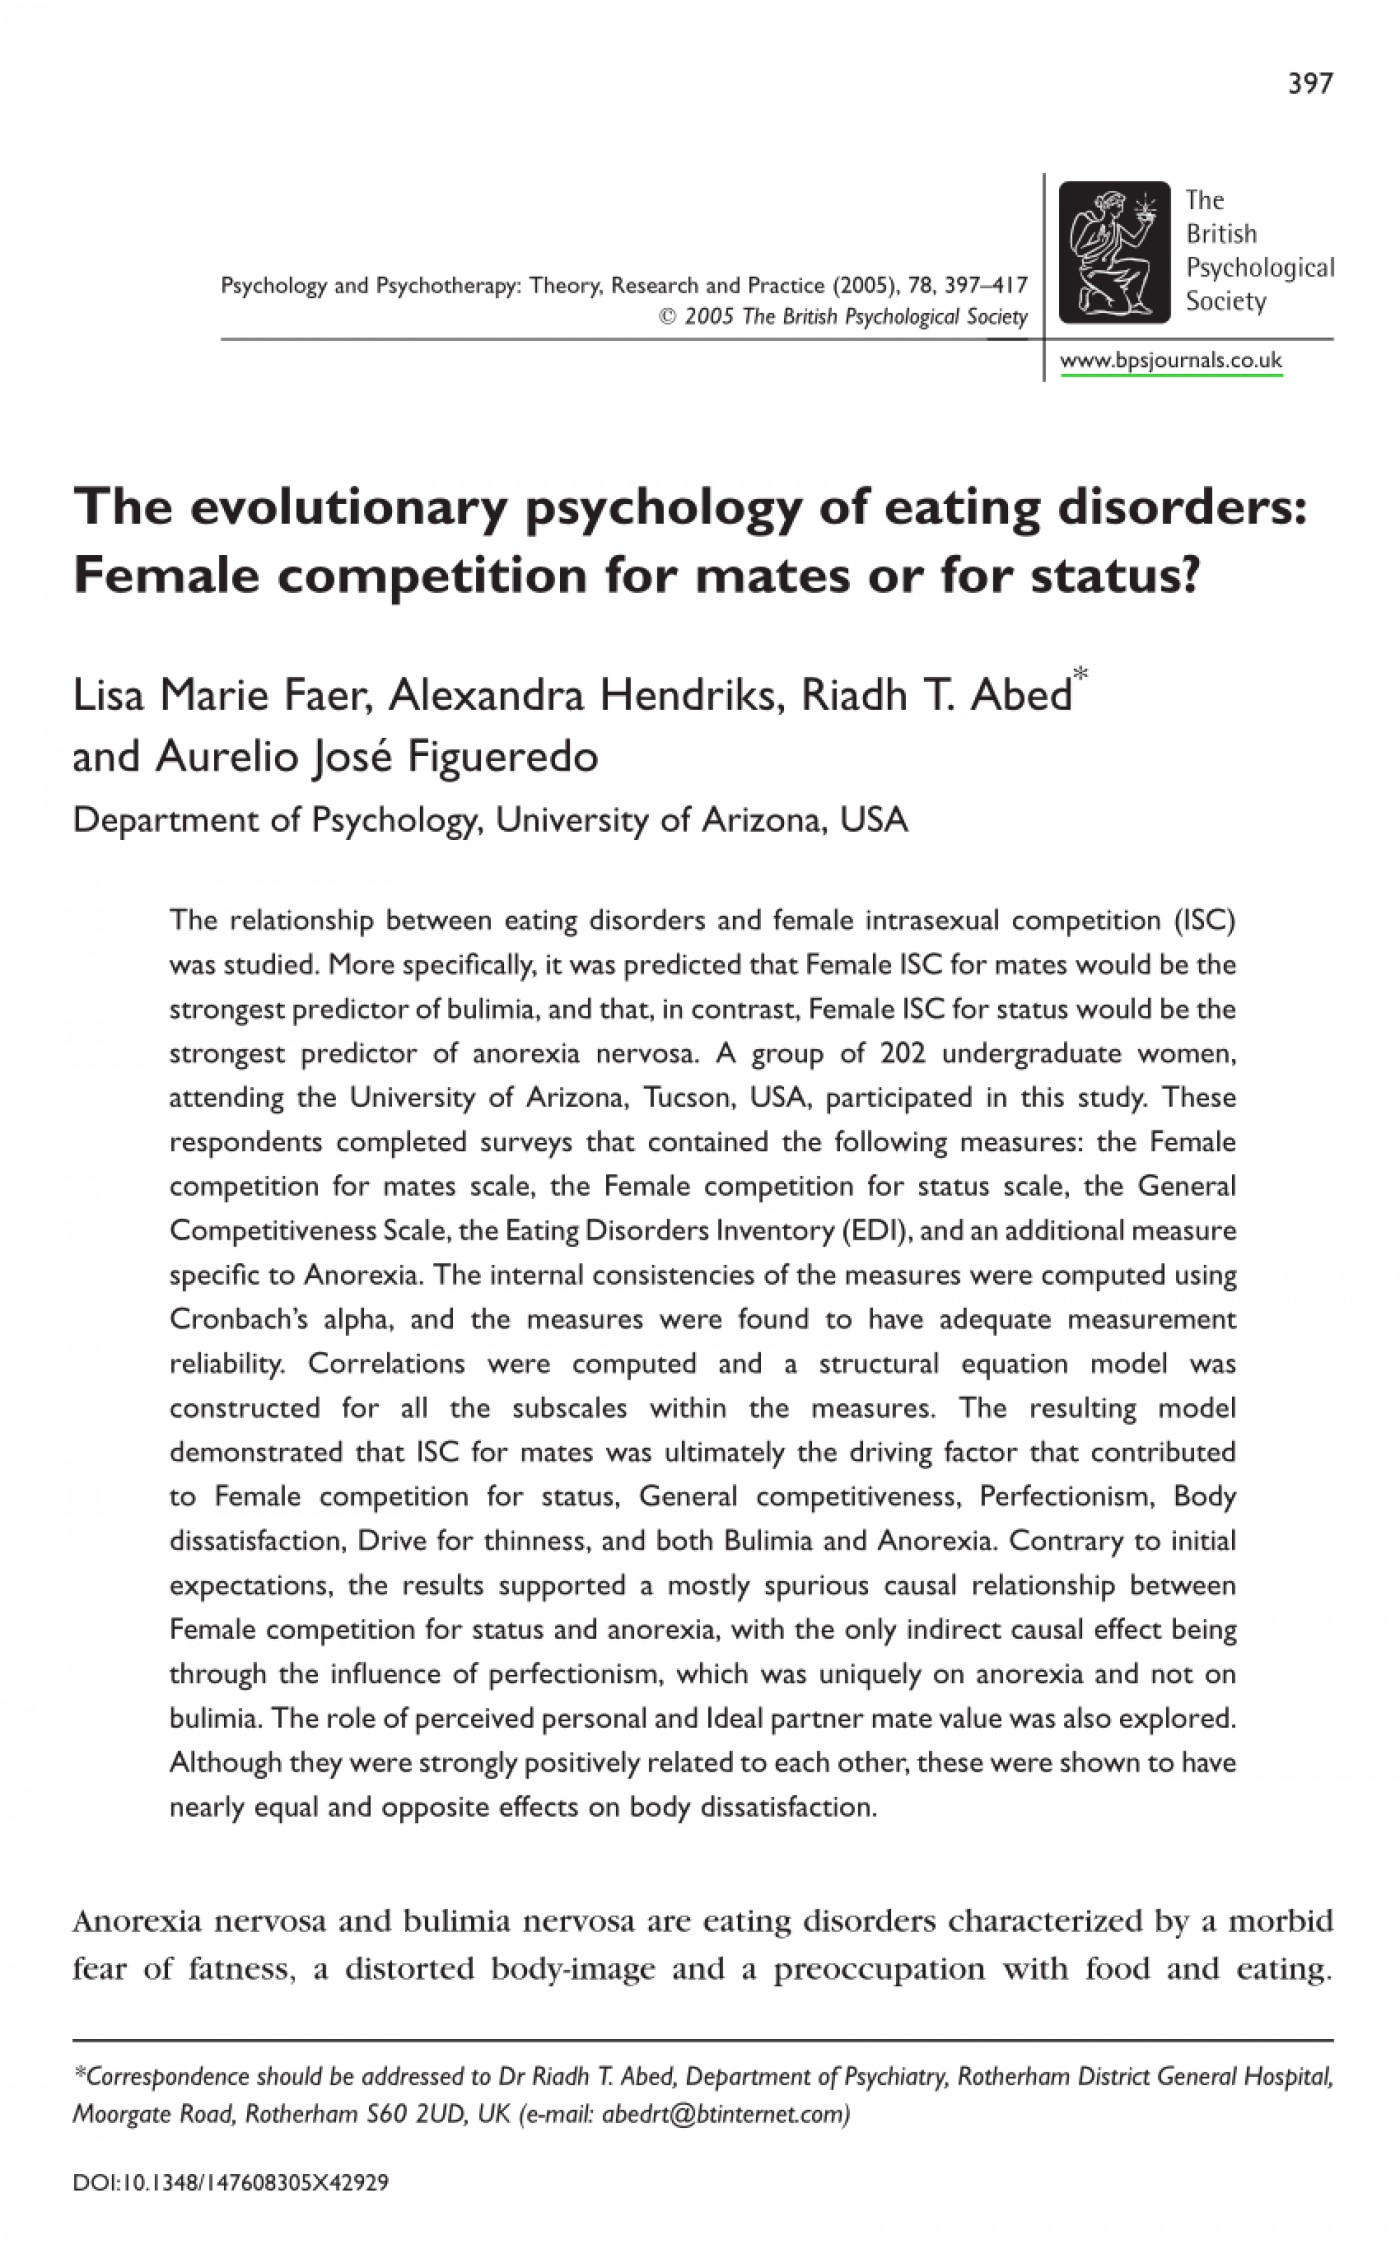 006 Psychology Research Paper On Eating Disorders Top Study Psychological Into Topics 1400